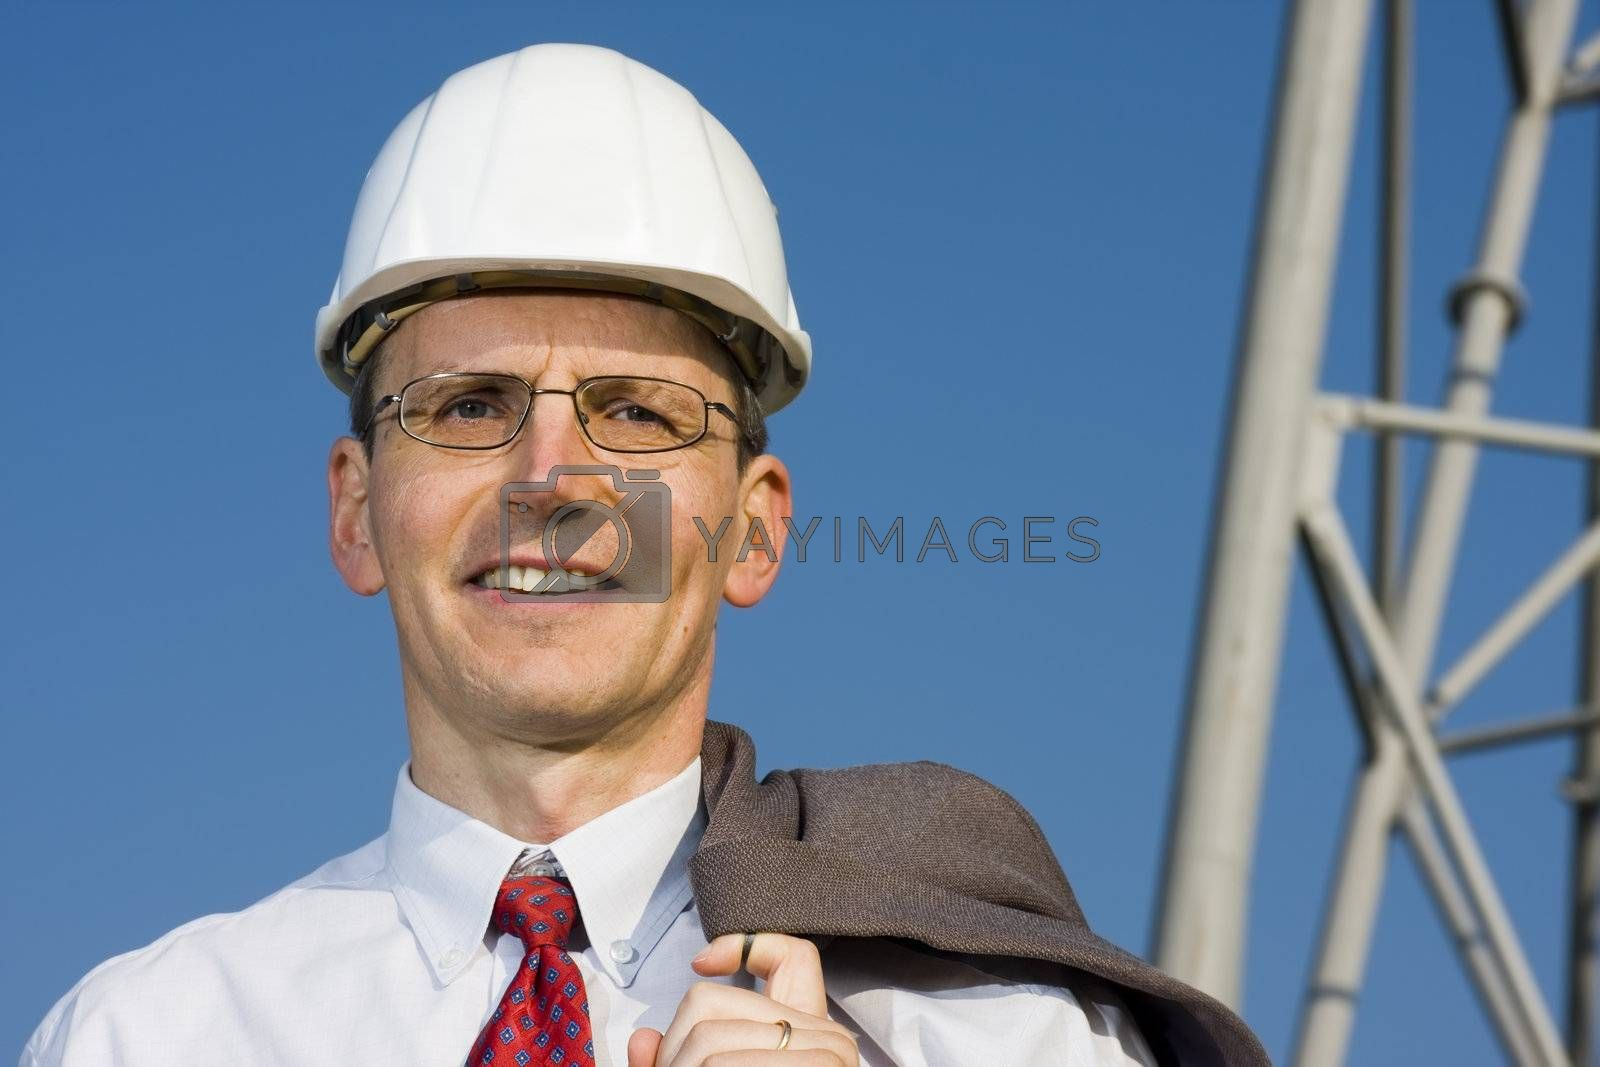 Smiling engineer in front of steel construction